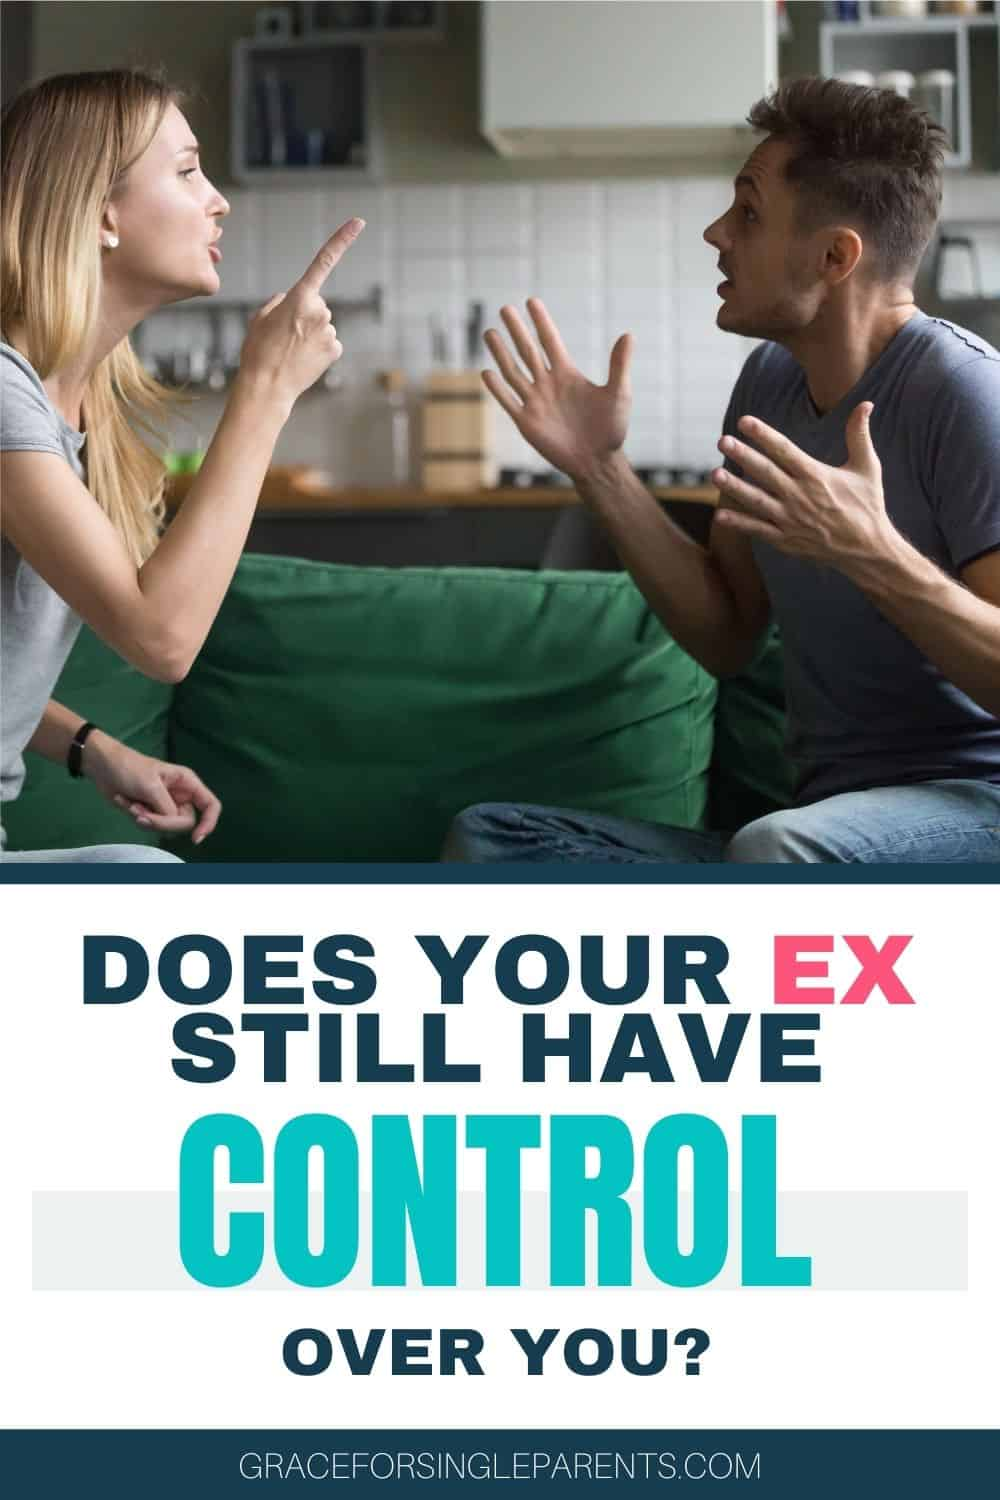 Does Your Ex Still Have Control Over You?